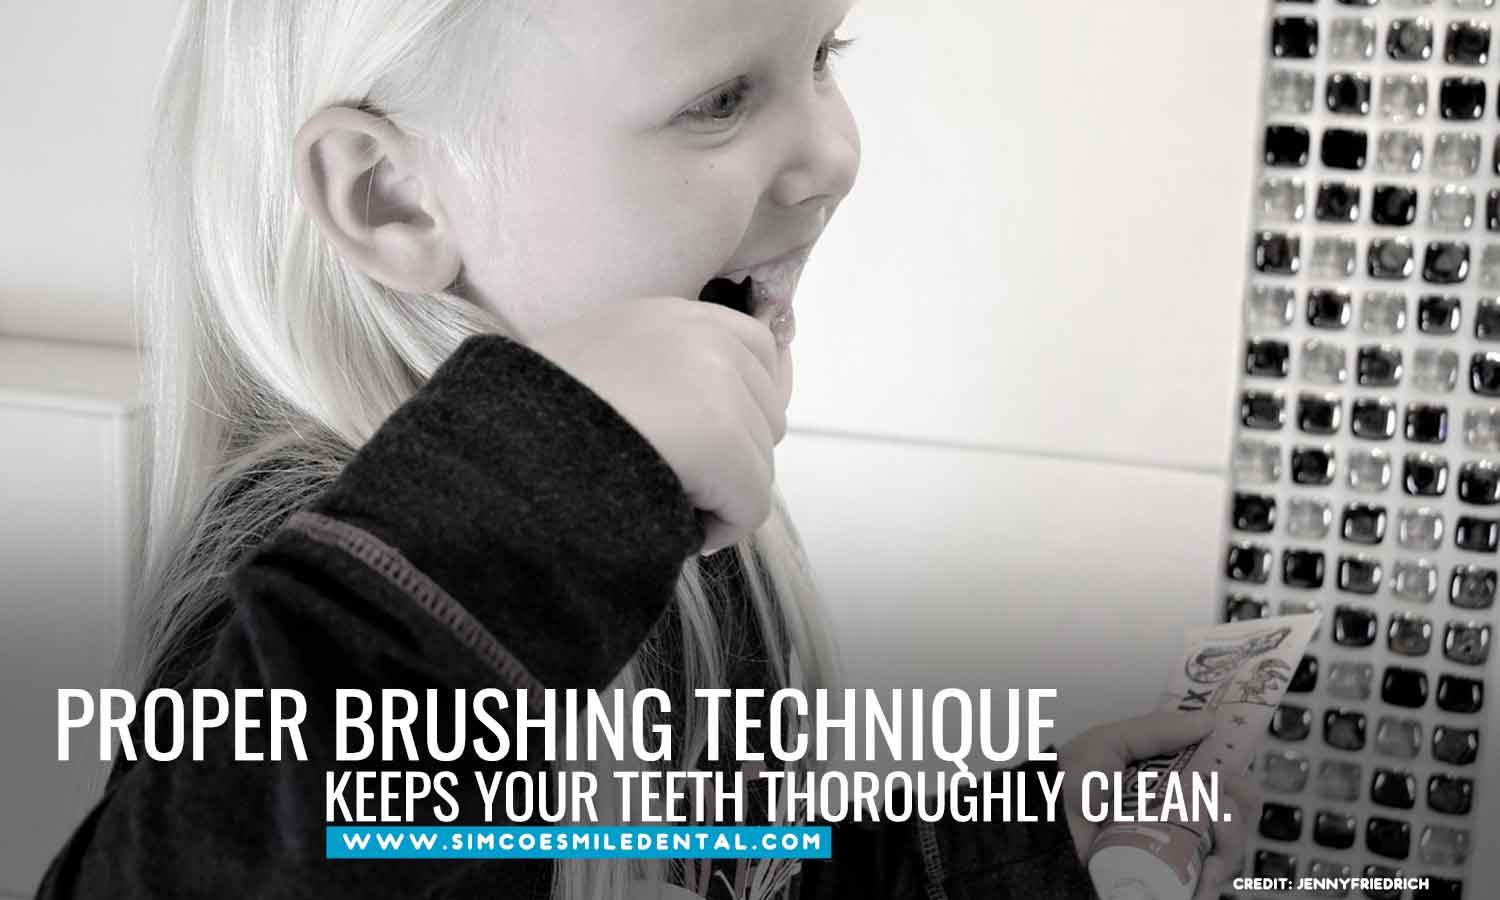 Proper-brushing-technique-keeps-your-teeth-thoroughly-clean Overbrushing And Its Effects On Your Teeth